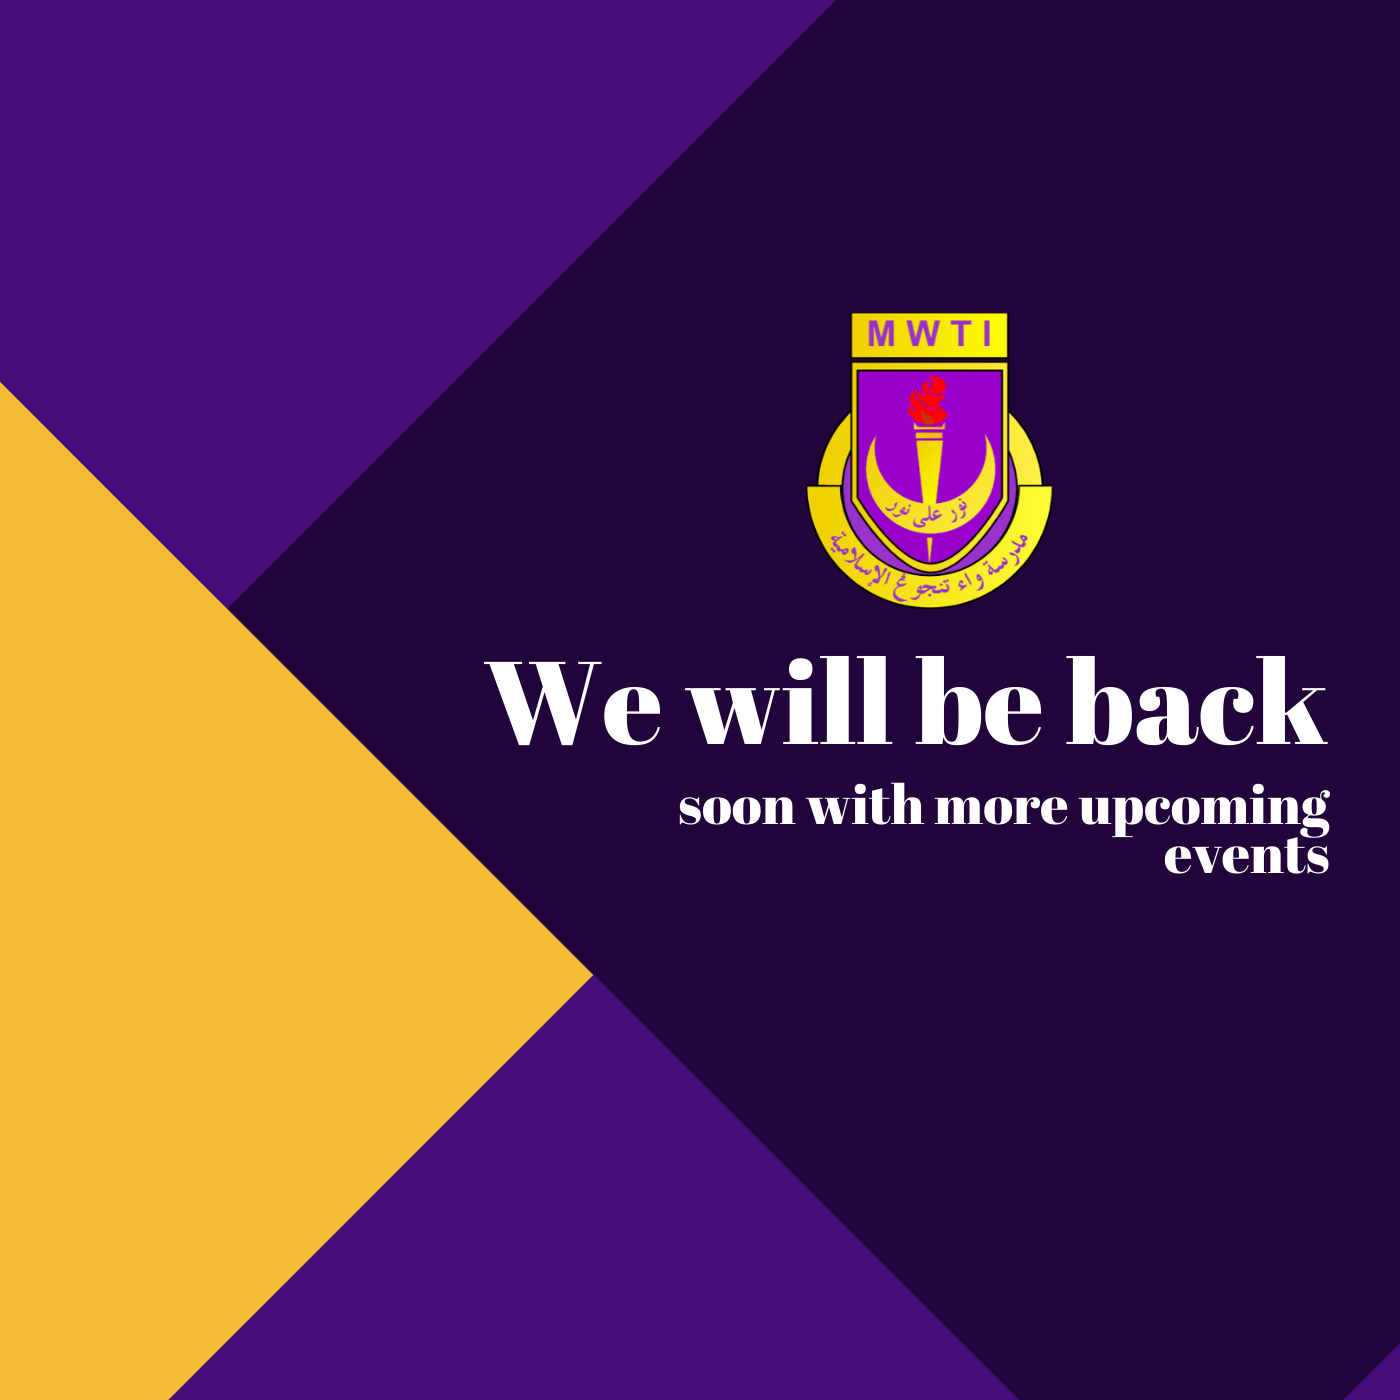 We will be back with more upcoming events (2)